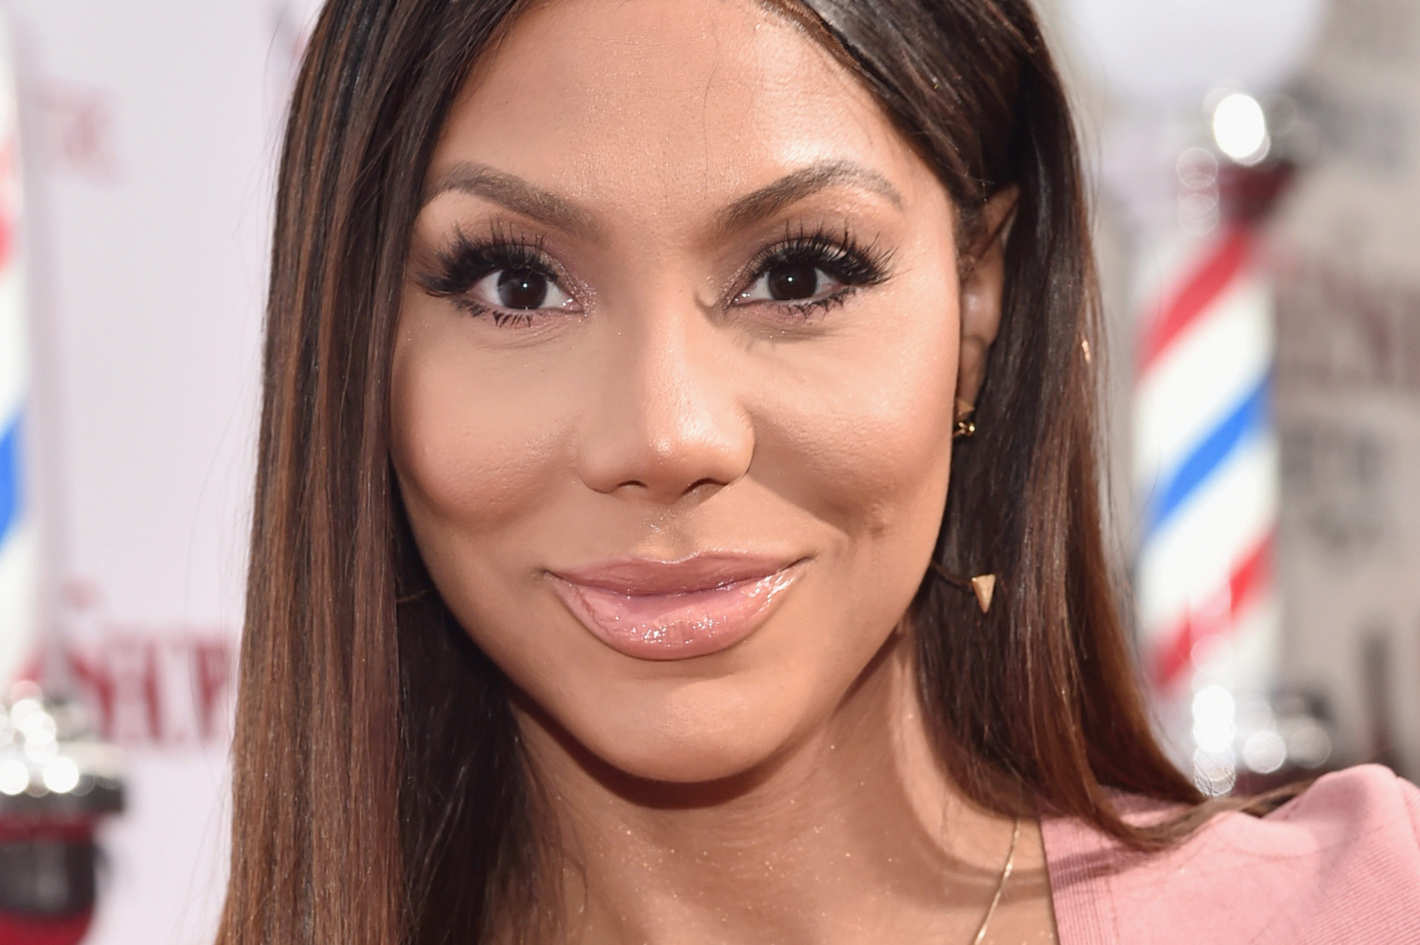 Tamar Braxton Is Featured As A Celebrity Mentor On BET's New Competition Series 'Next Big Thing'